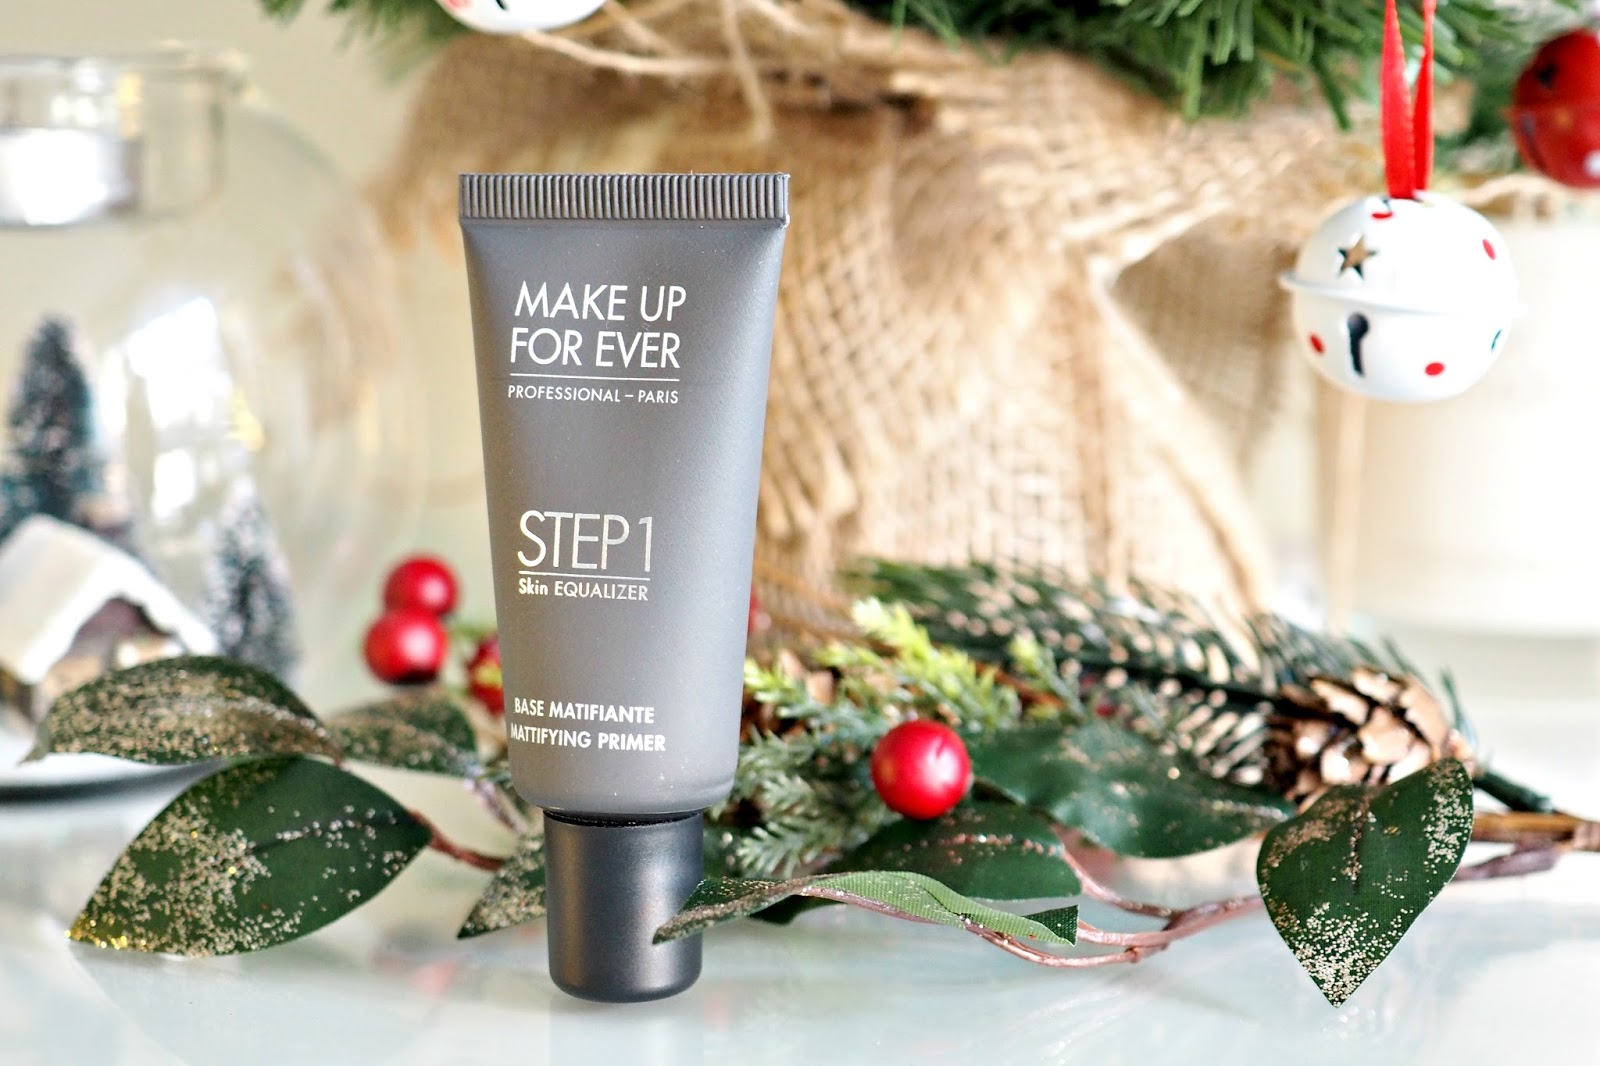 Make Up For Ever Skin Equalizer - Mattifying Primer